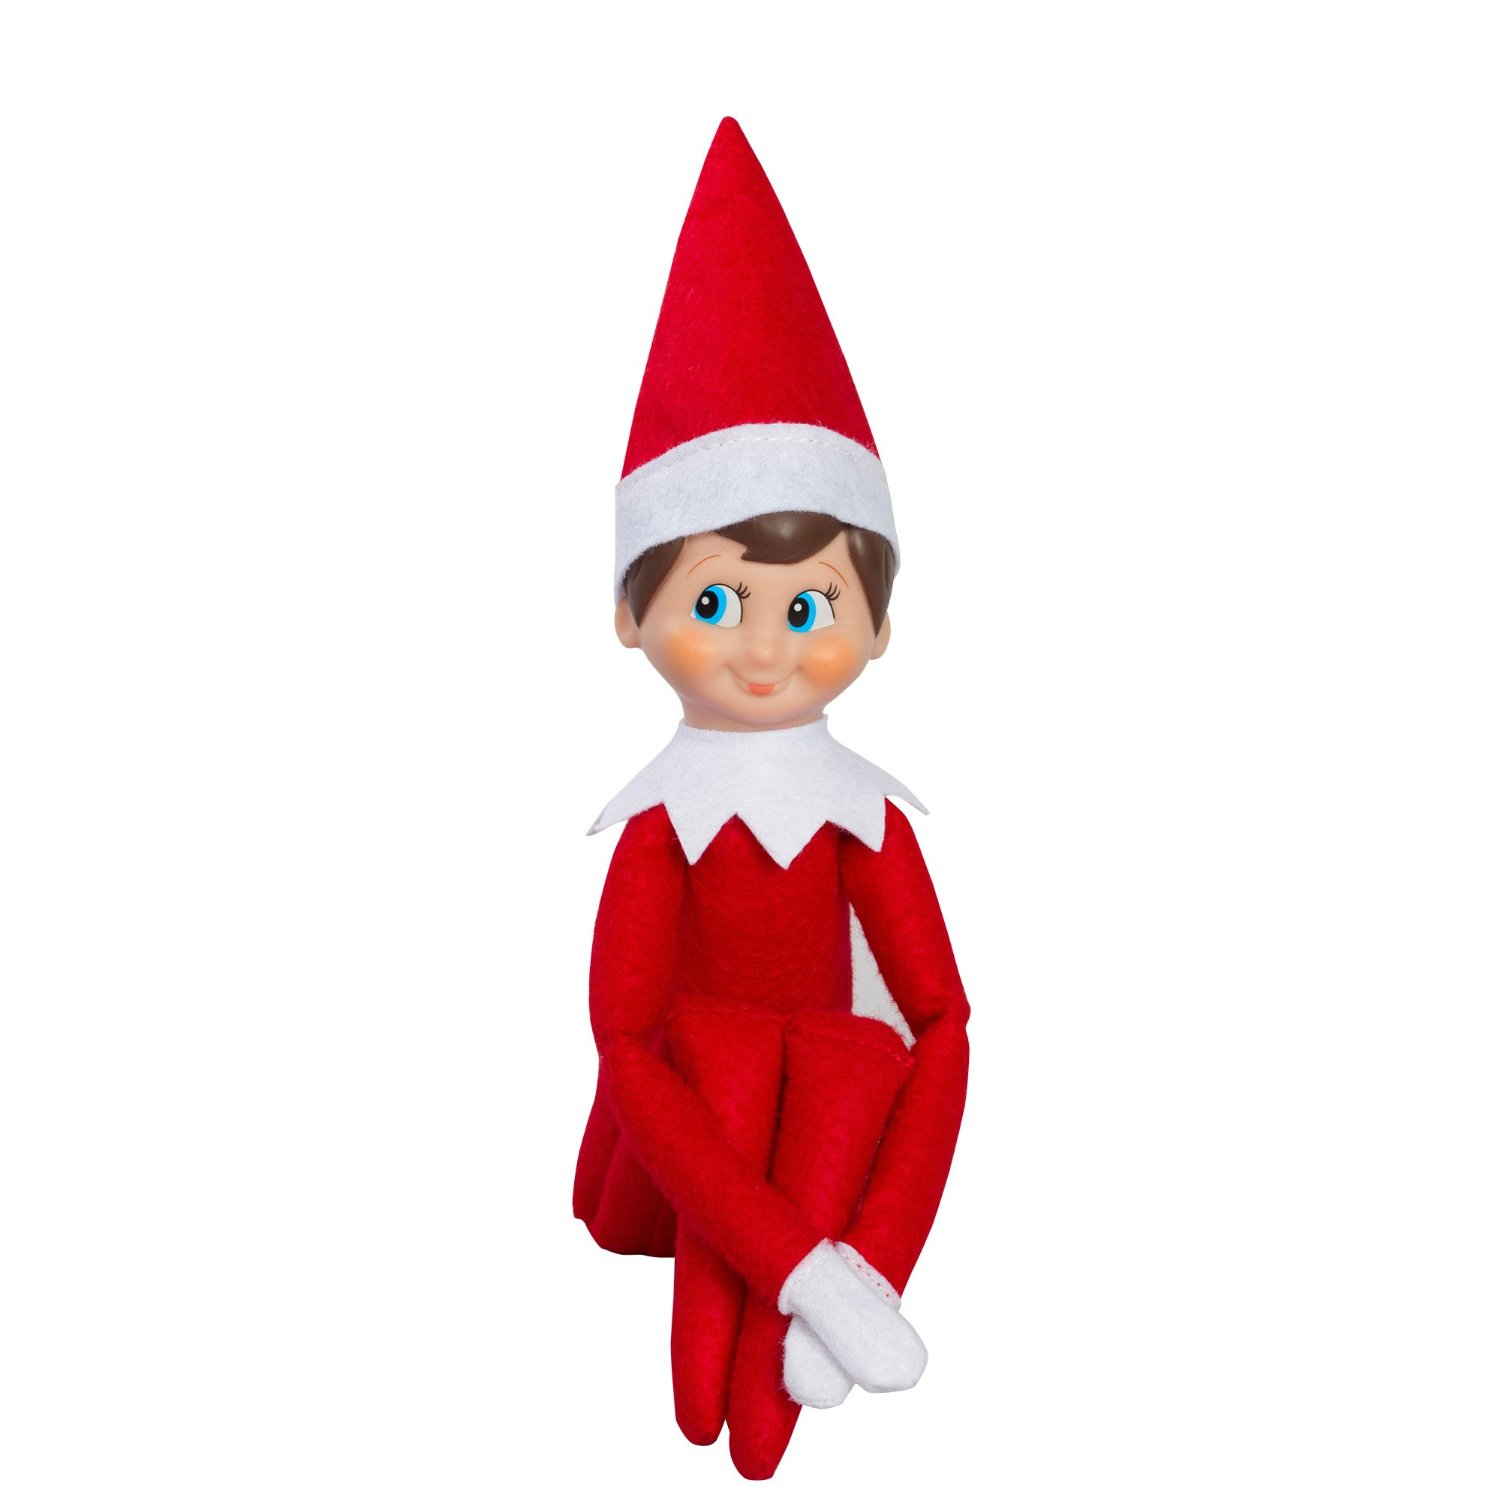 Should parents use Elf on the Shelf technology to monitor children?.